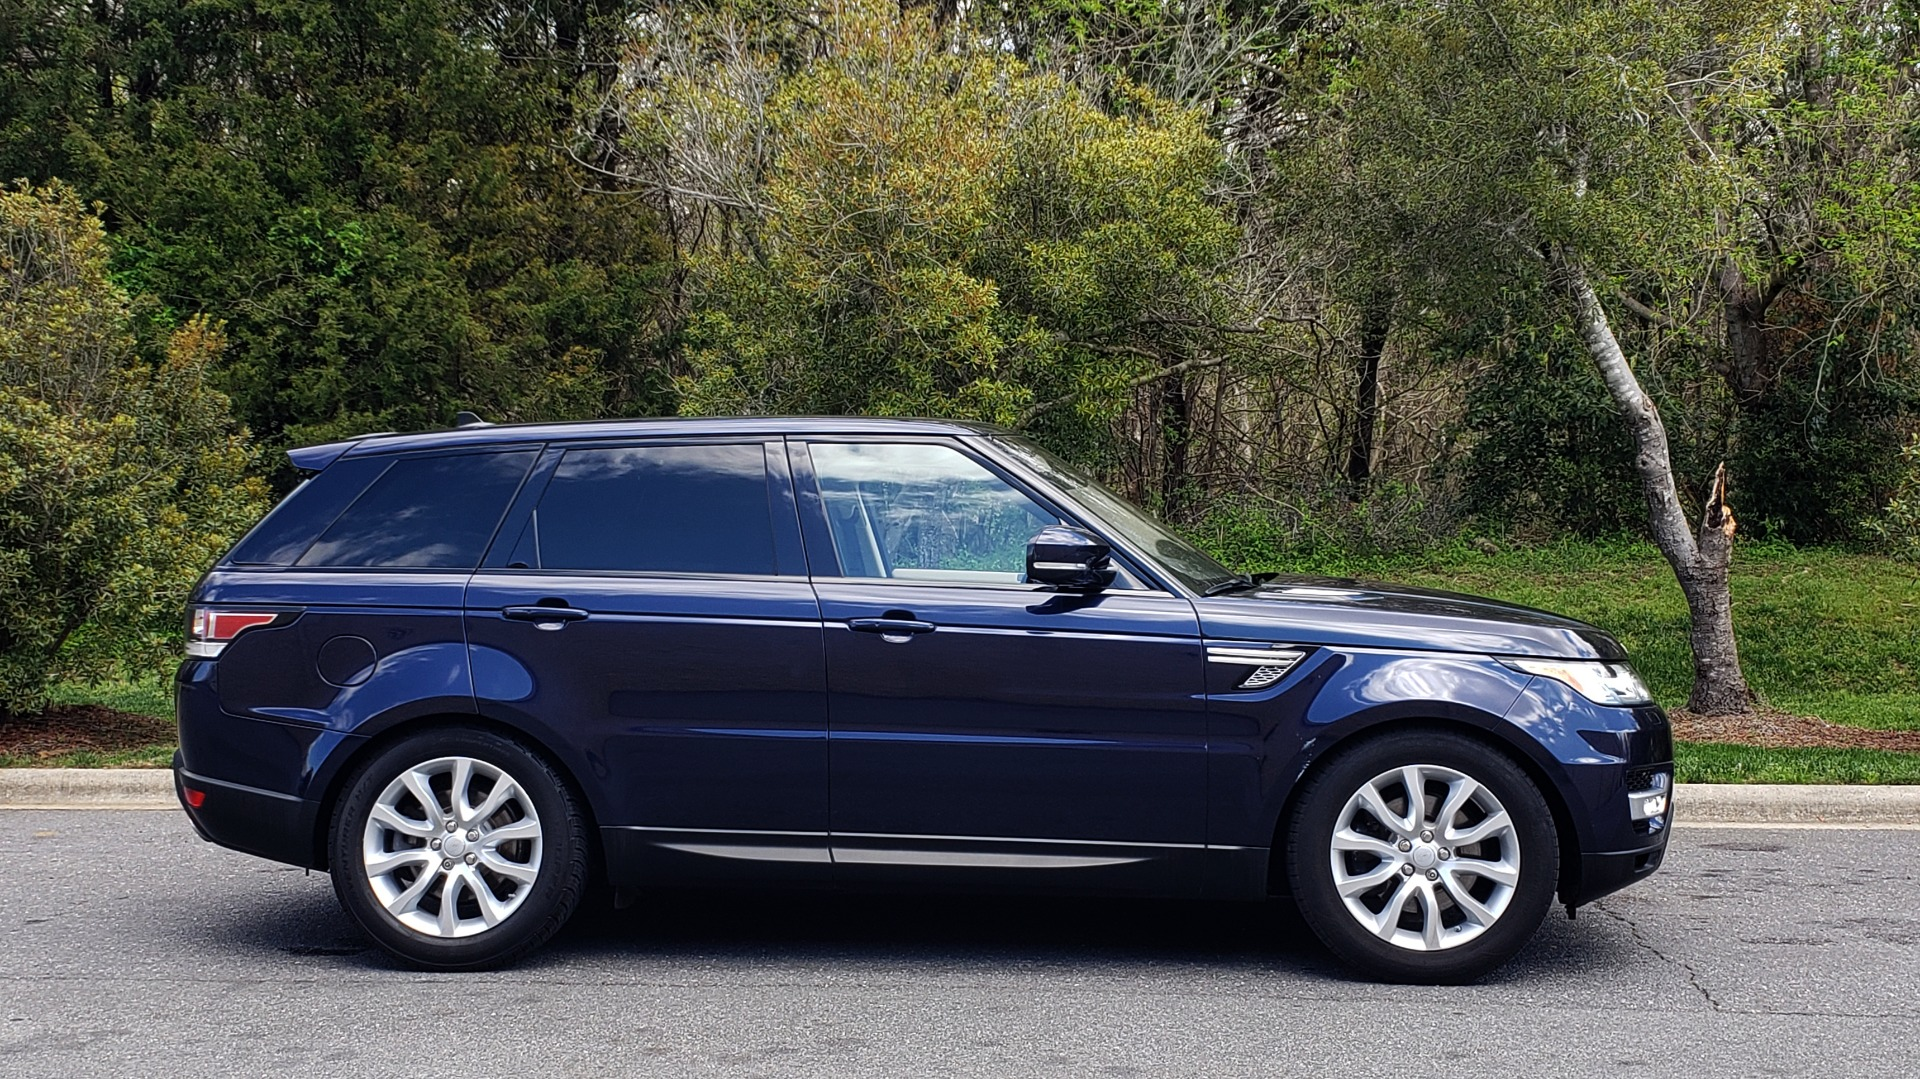 Used 2016 Land Rover RANGE ROVER SPORT SC V6 HSE / 4WD / NAV / PANO-ROOF / REARVIEW / CLIMATE & VISIBILITY for sale Sold at Formula Imports in Charlotte NC 28227 5